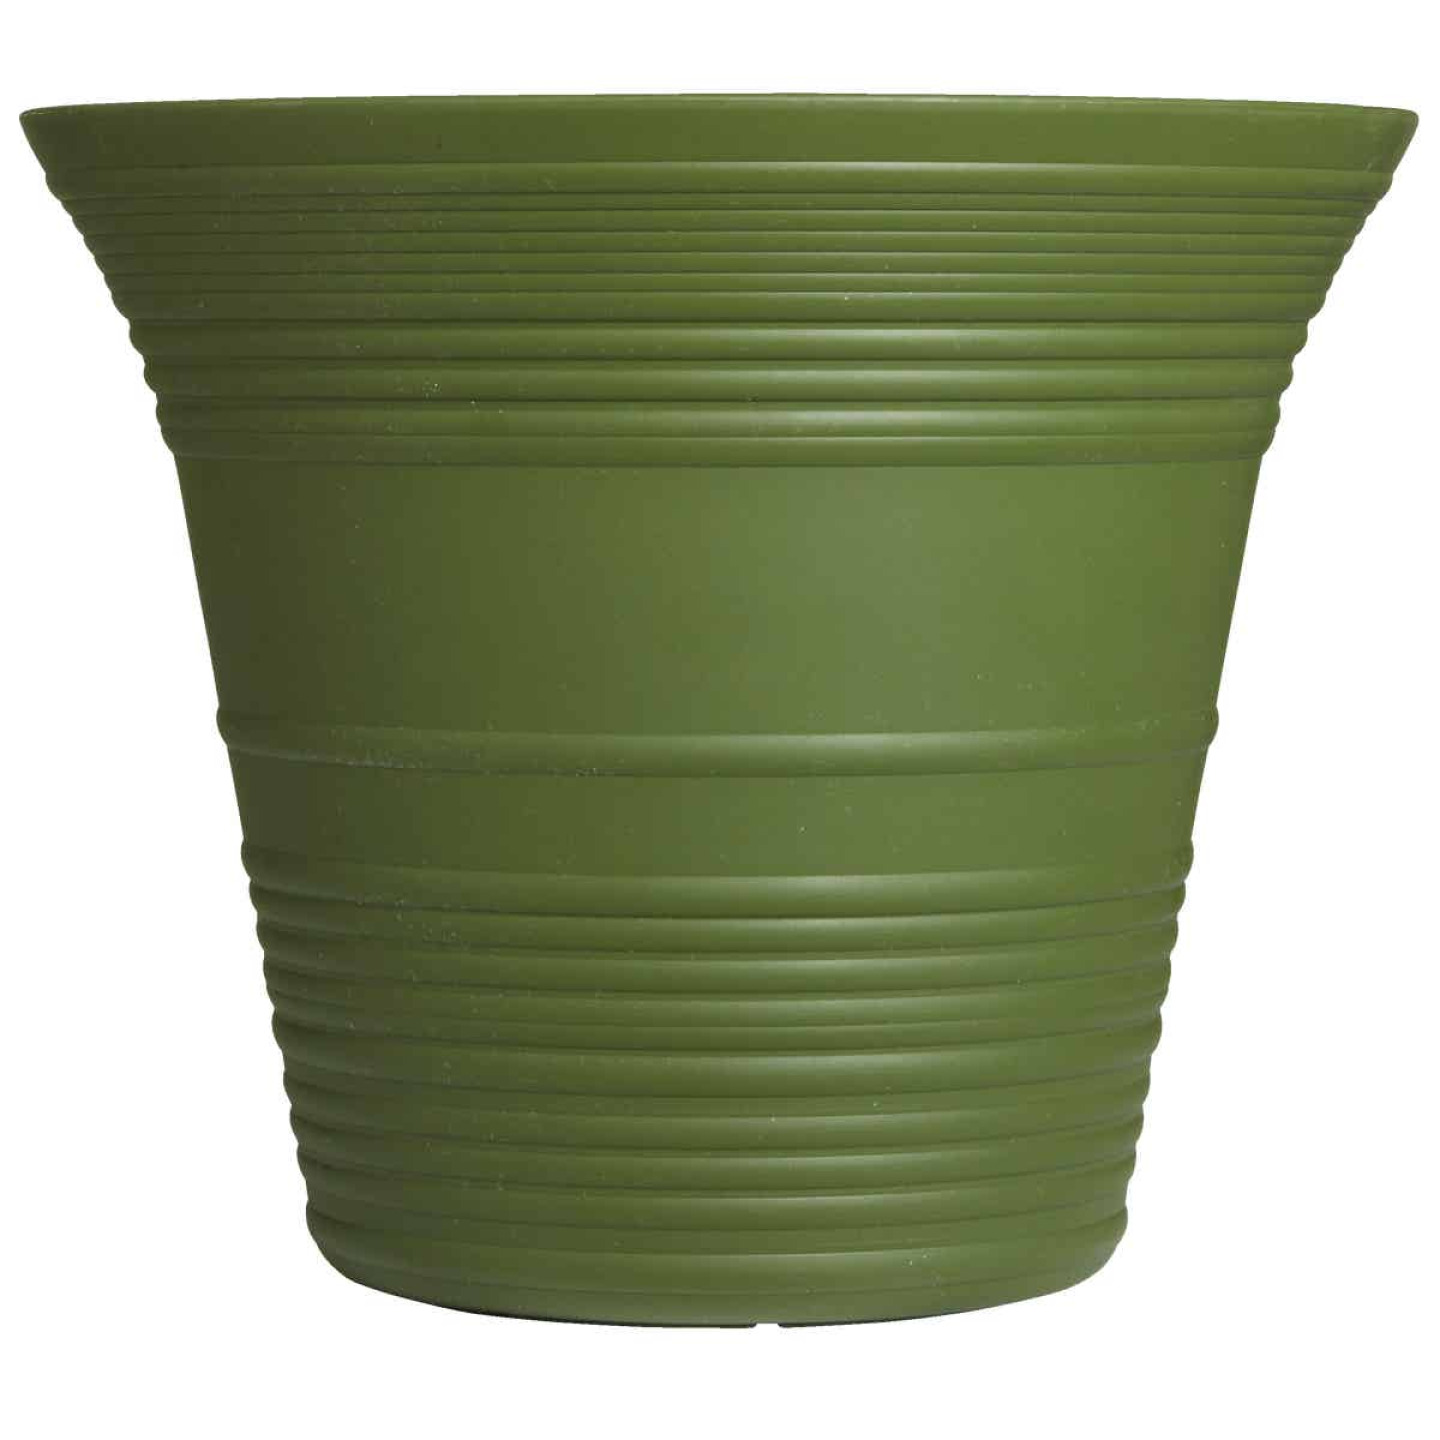 Myers Sedona 12 In. Polypropylene Woodland Green Planter Image 2